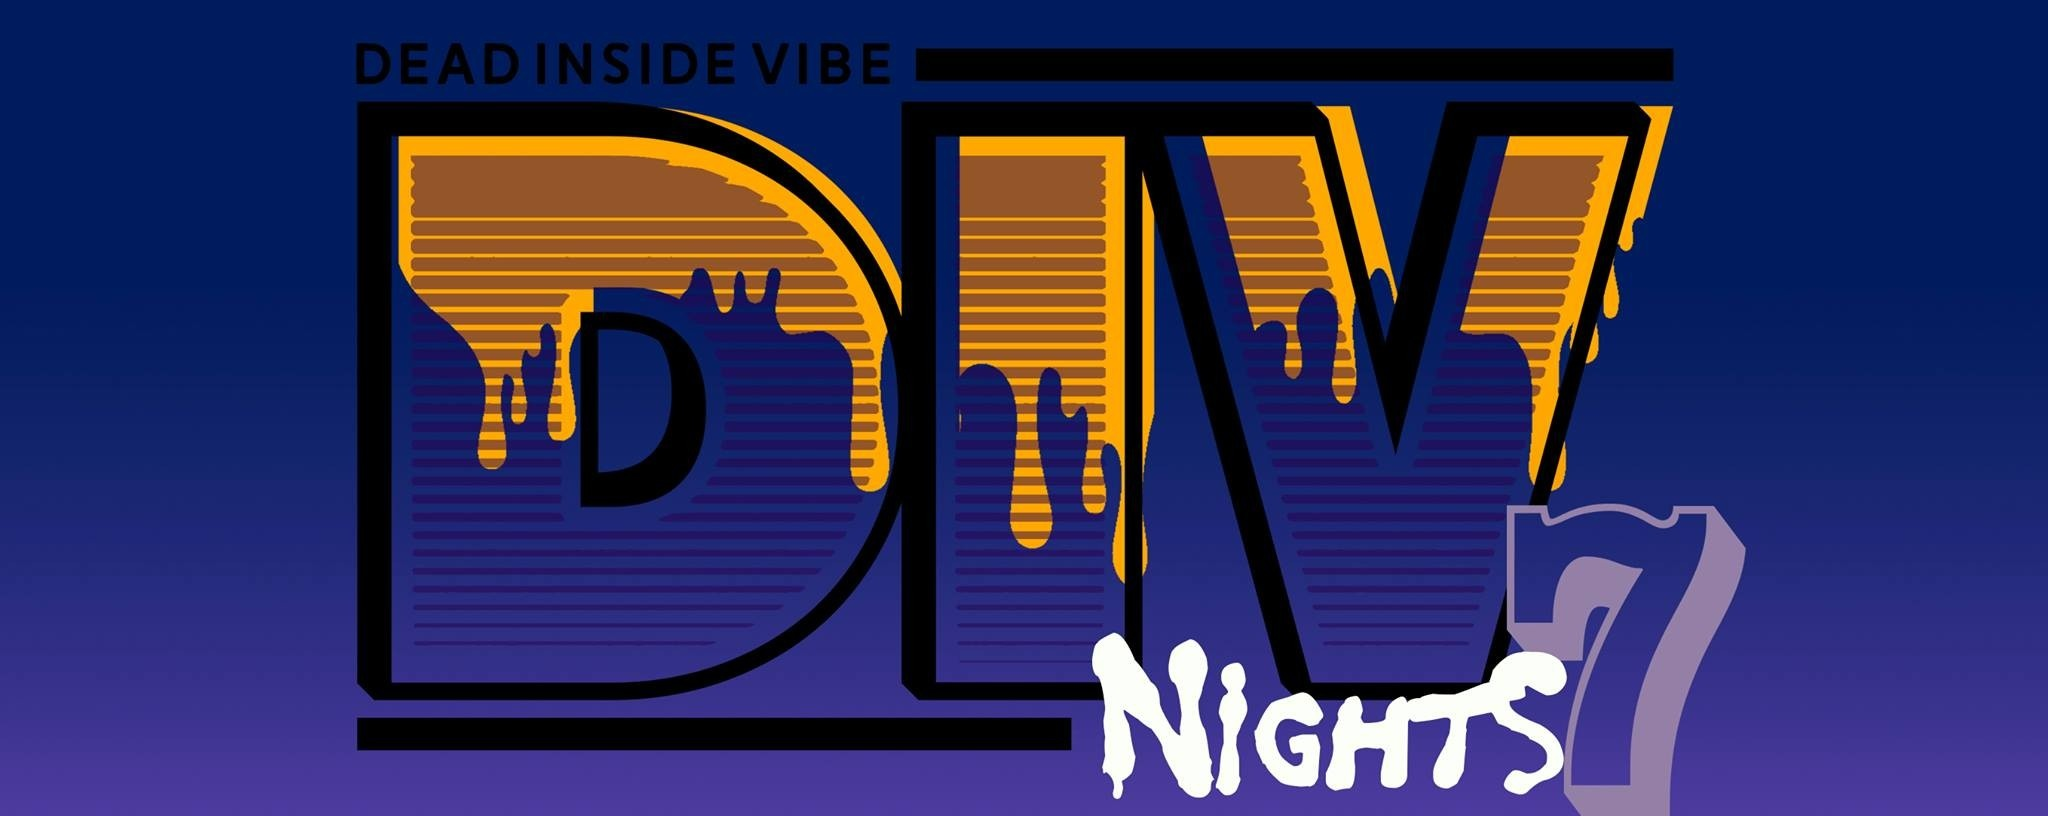 DEAD INSIDE VIBE (DIV) NIGHTS 7 : KNIFE PARTY